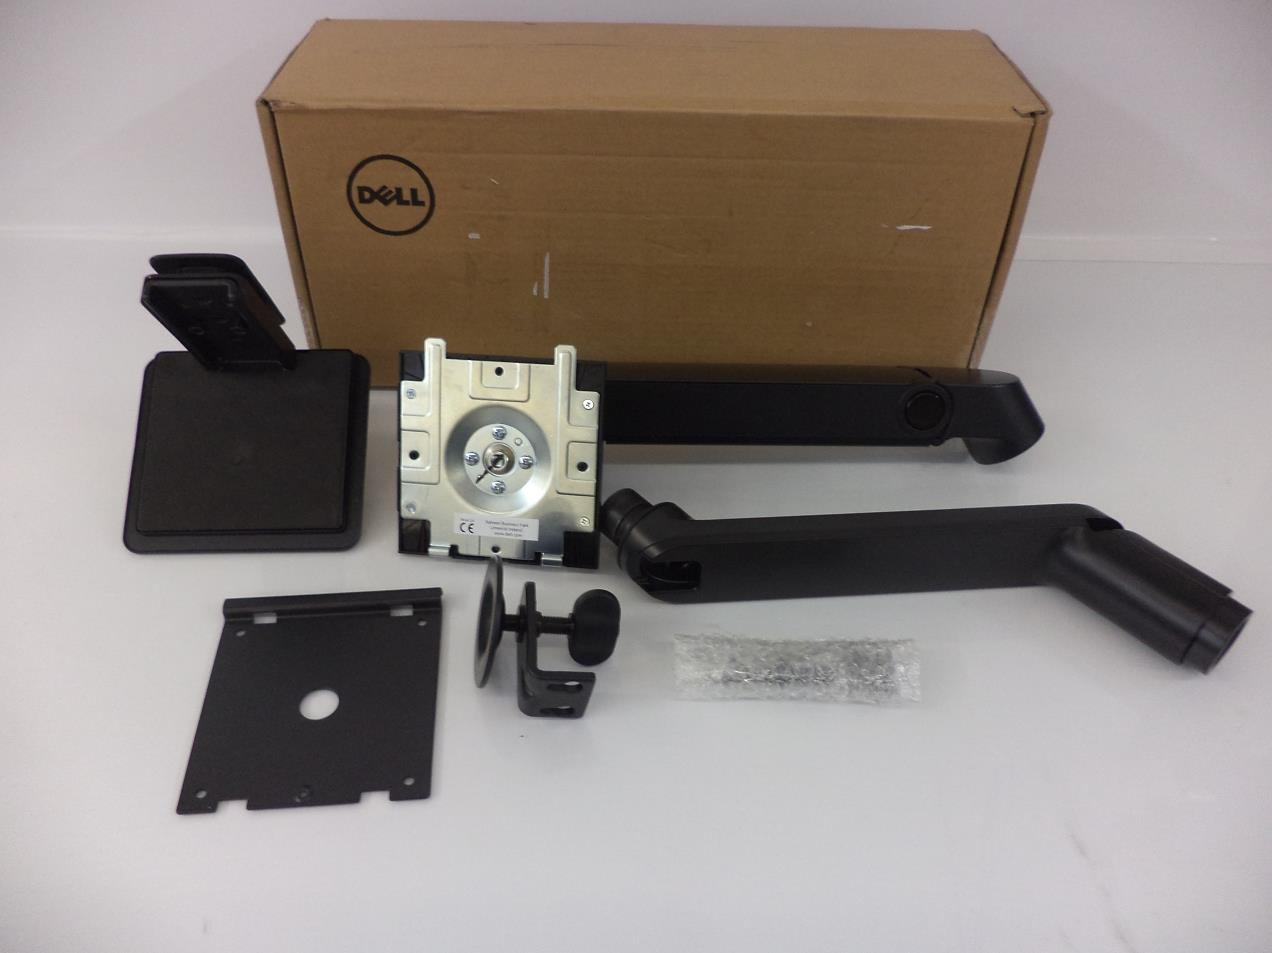 Dell Ff2fg Dell Msa14 Single Monitor Arm Stand Ebay